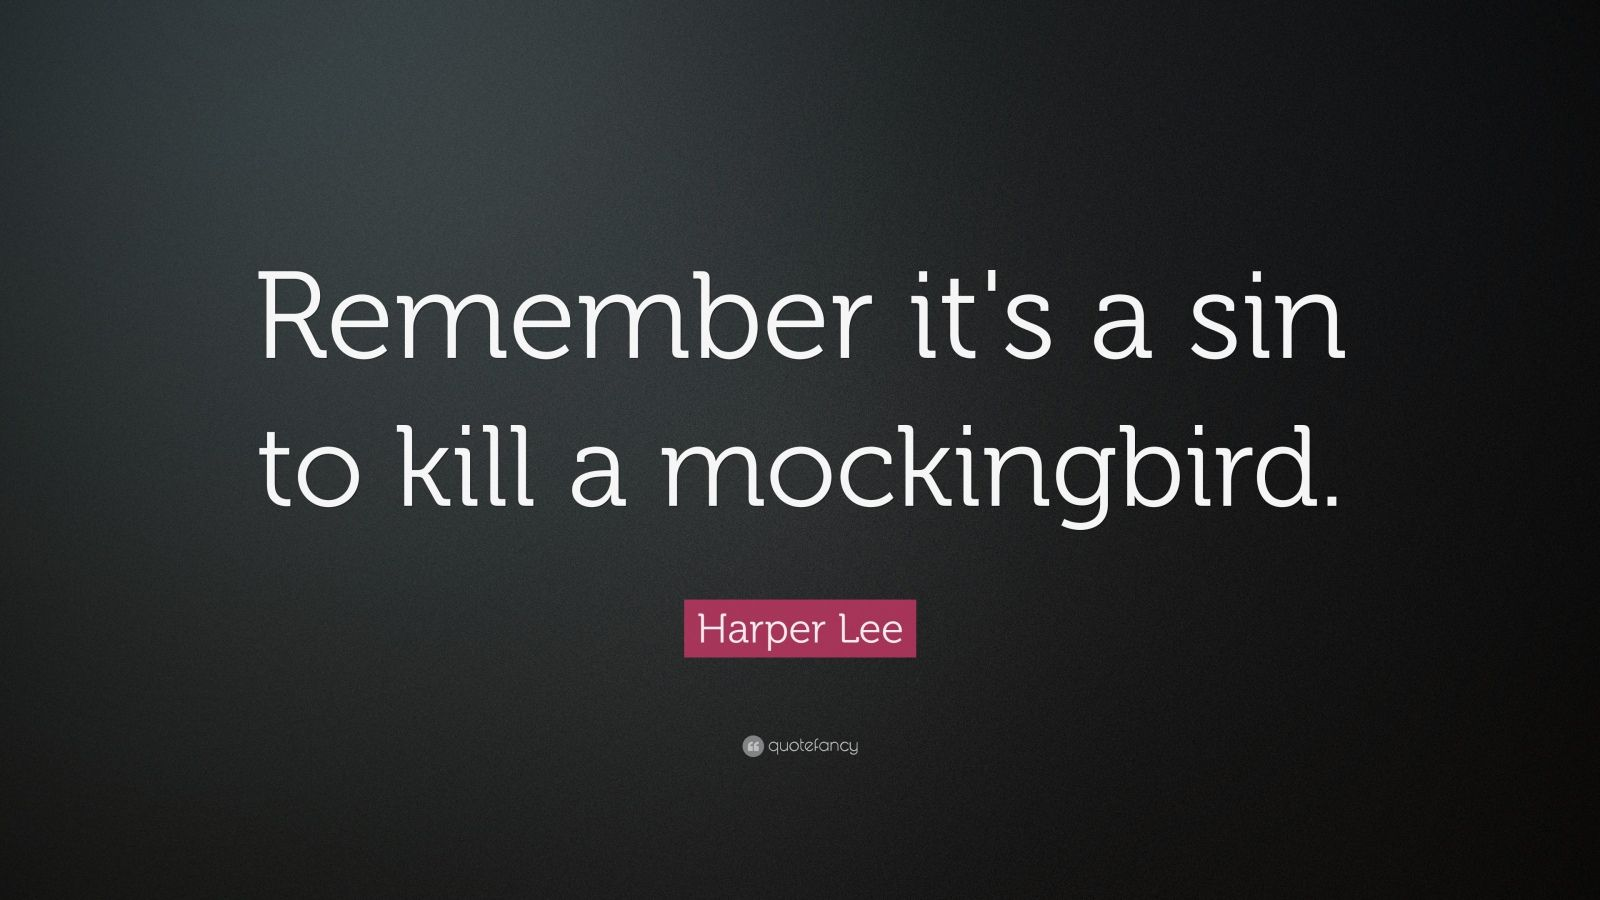 mockingbird quotes Adored for his courage and integrity, atticus finch is one of the most iconic literary heroes of the 20th century.